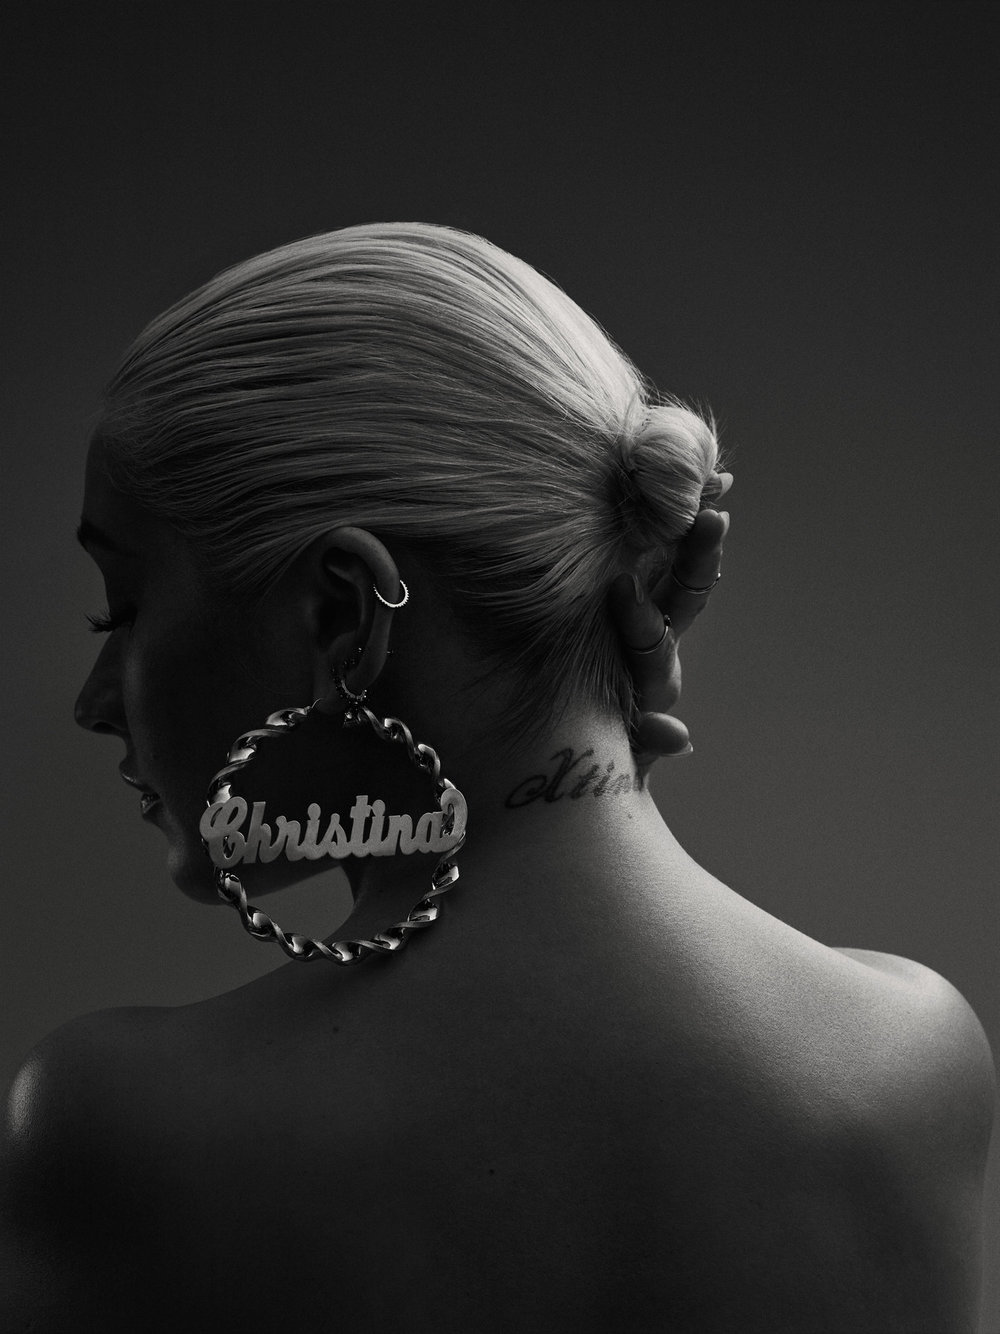 181004_Billboard_ChristinaAguilera_0561_Vertical.jpg